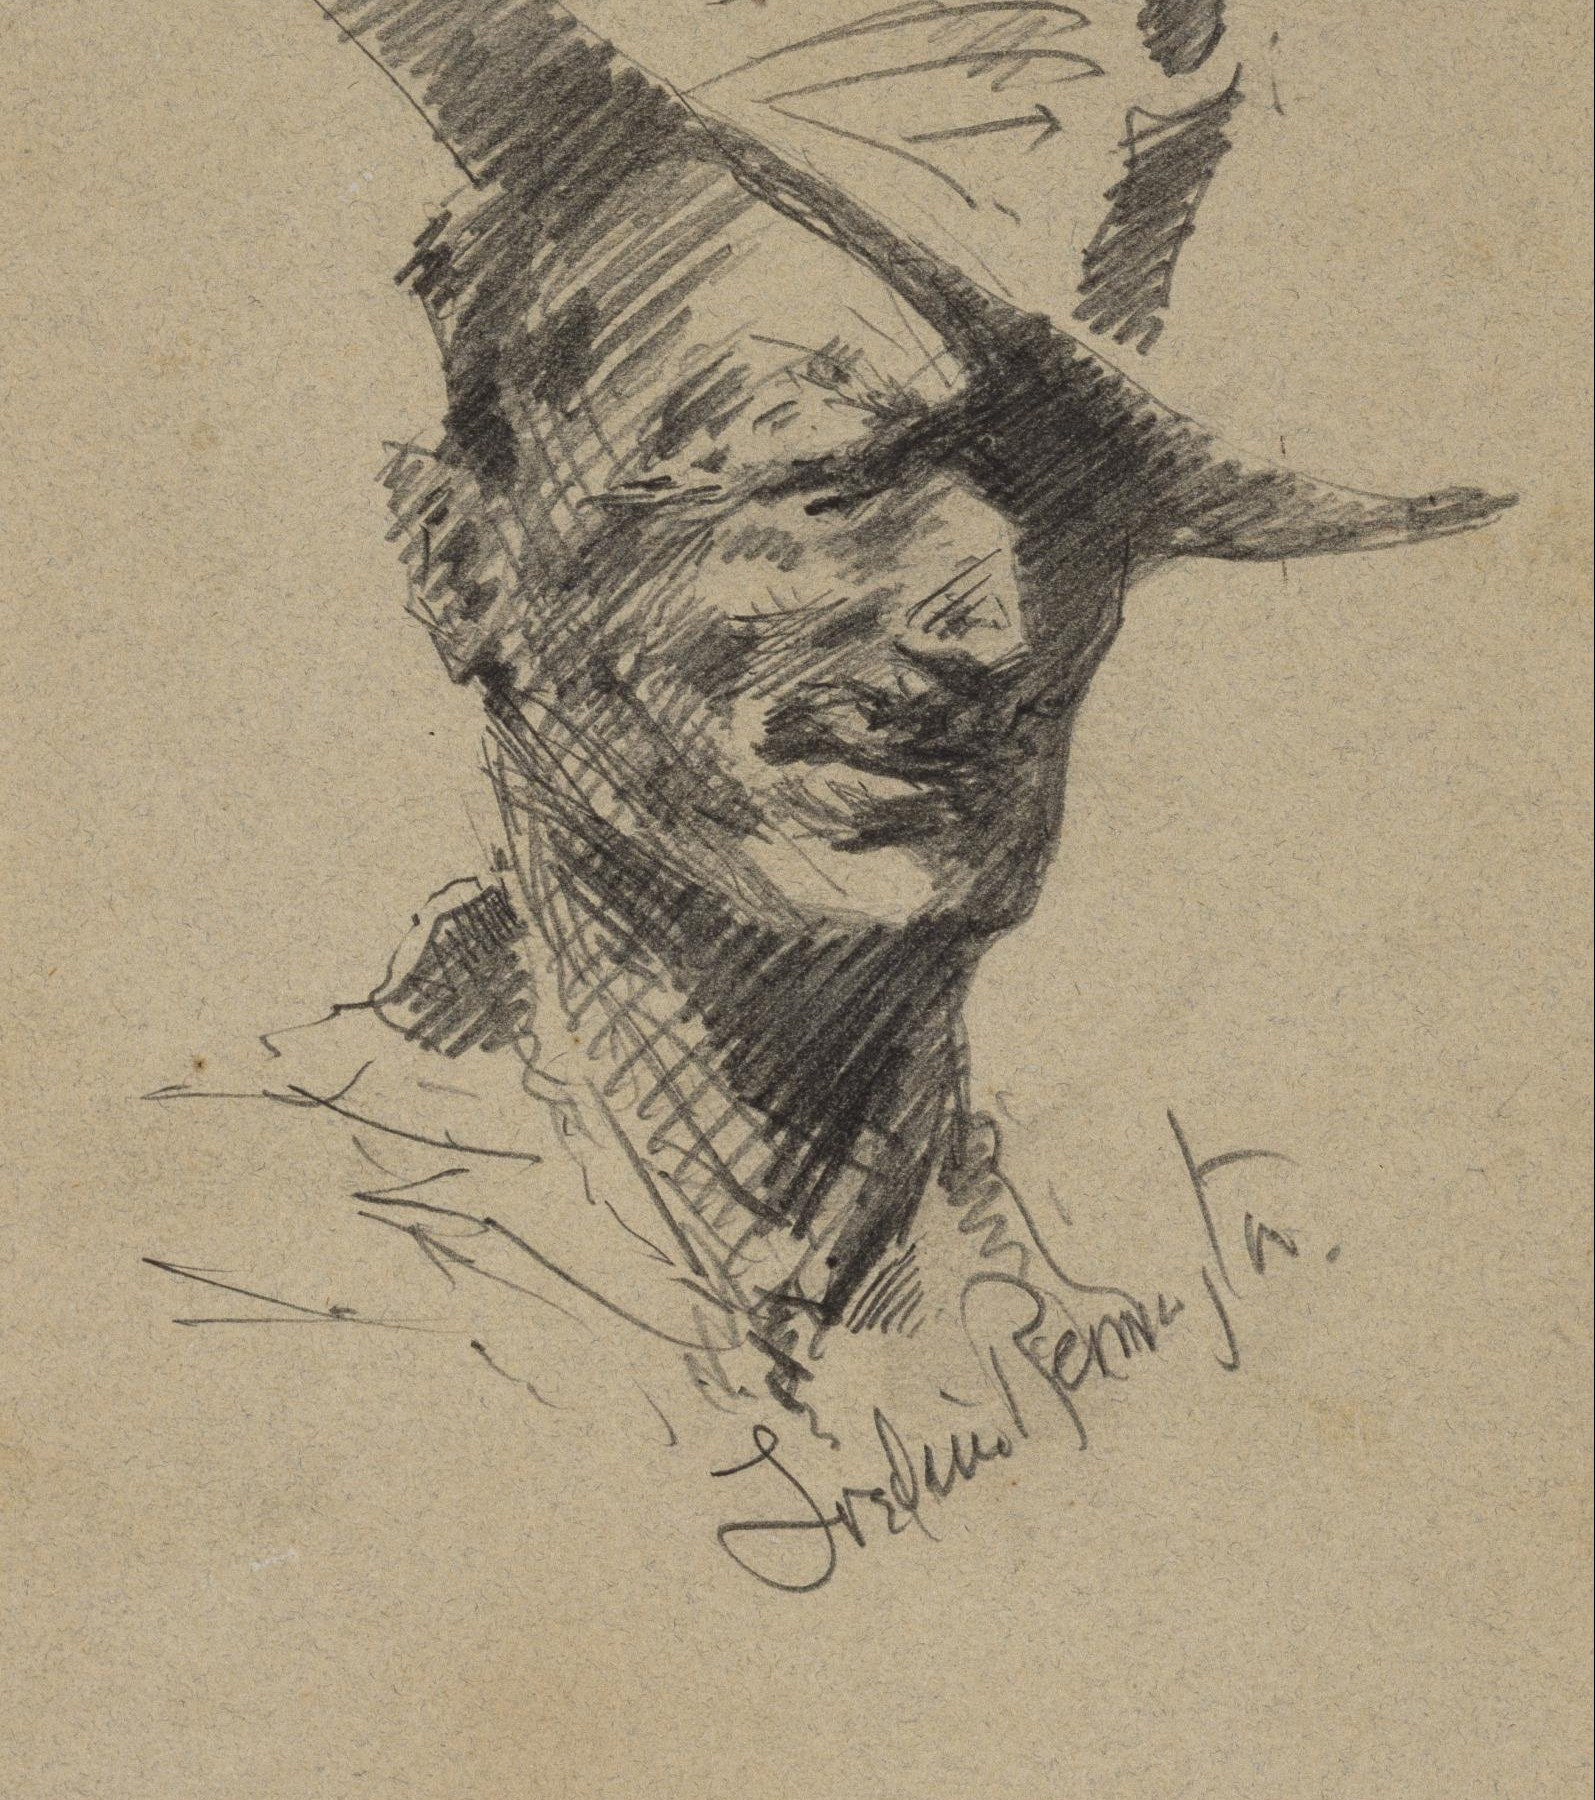 Frederick Remington, Self Portrait